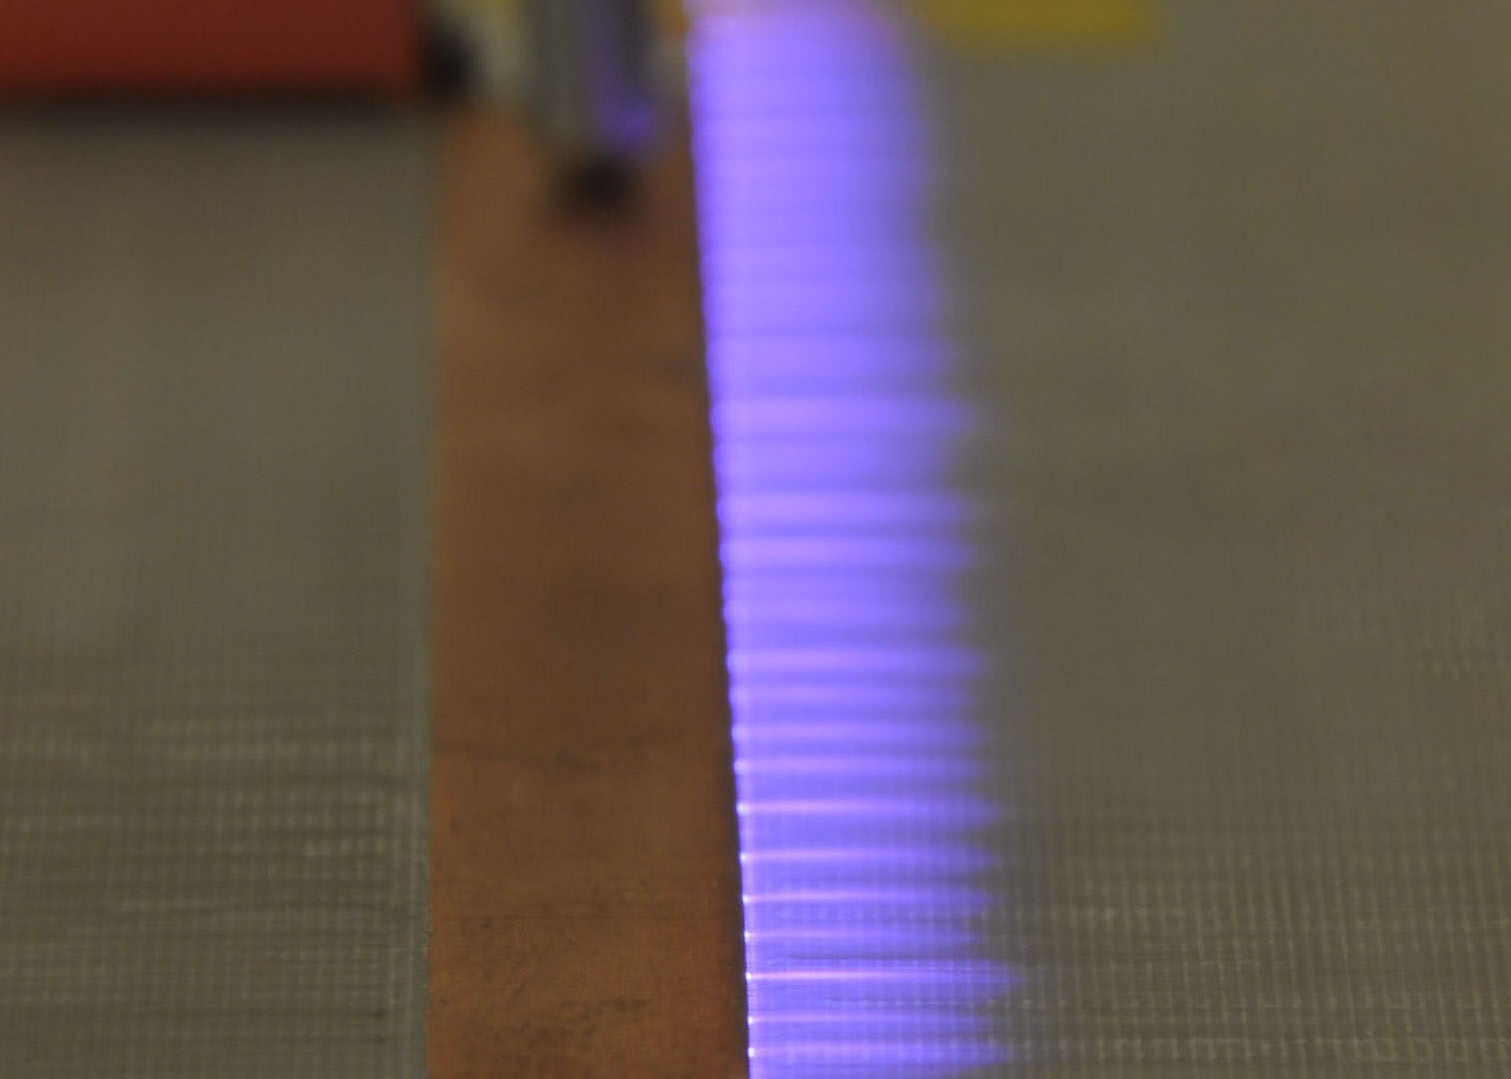 Figure 4-1: Direct flow control is for instance possible using plasma actuators (purple glow)